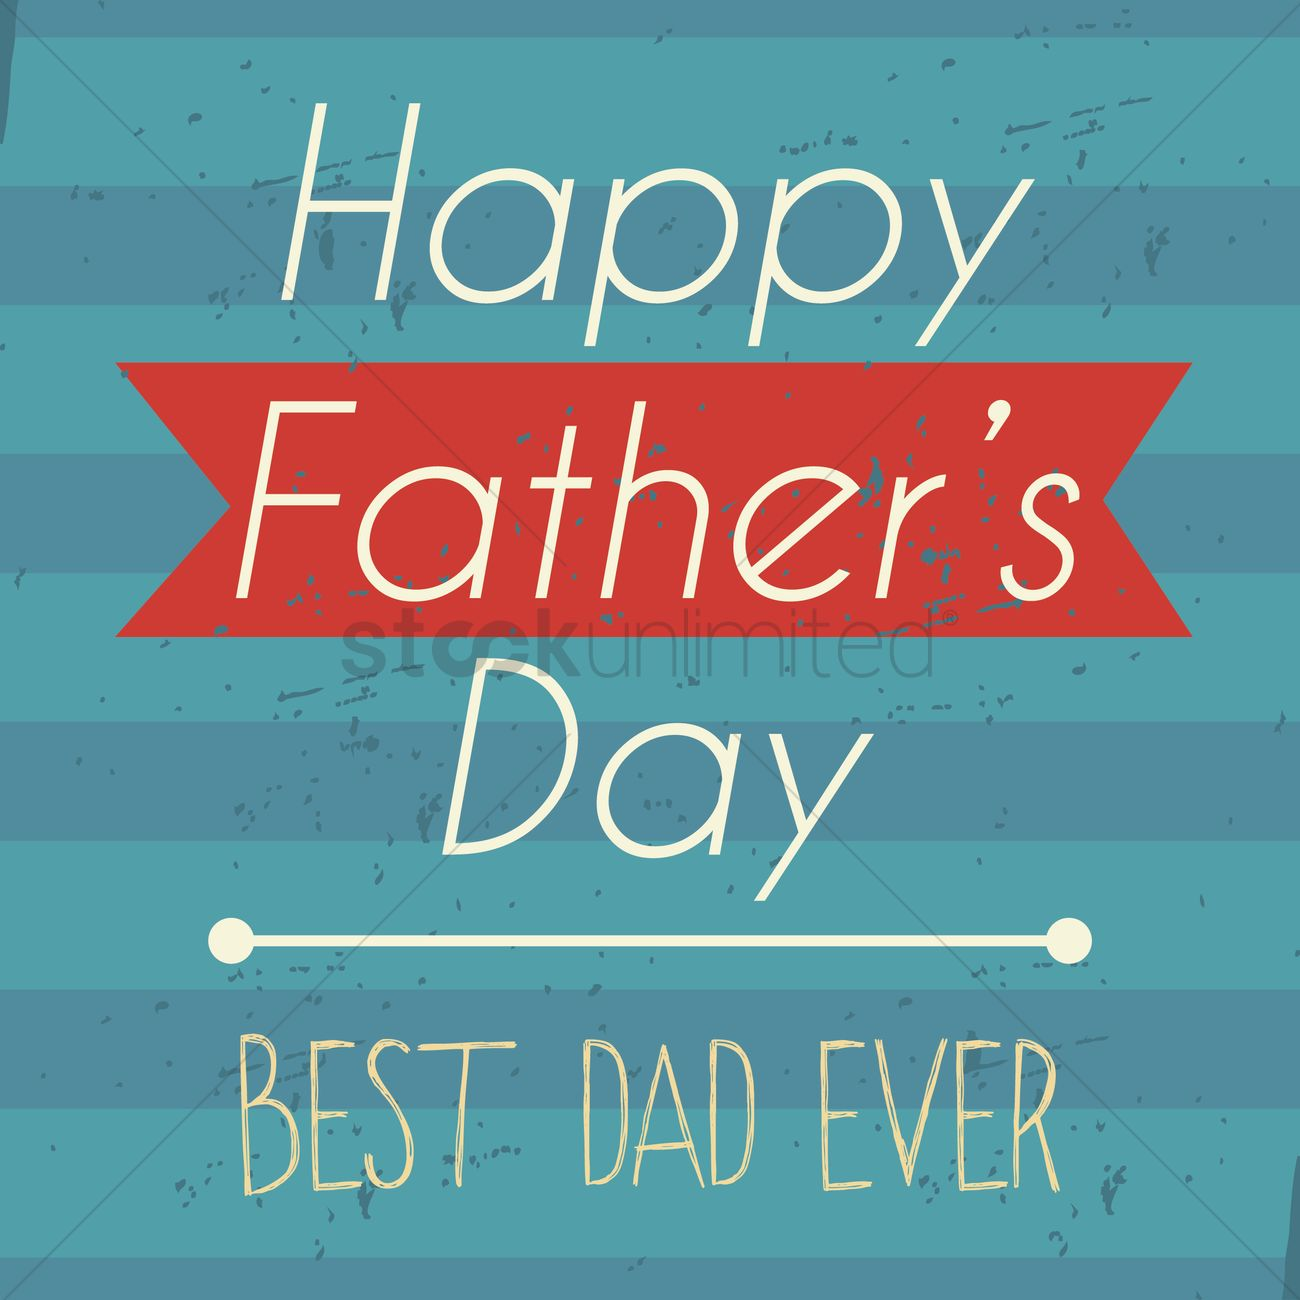 Happy Fathers Day Card Vector Image 1582977 Stockunlimited